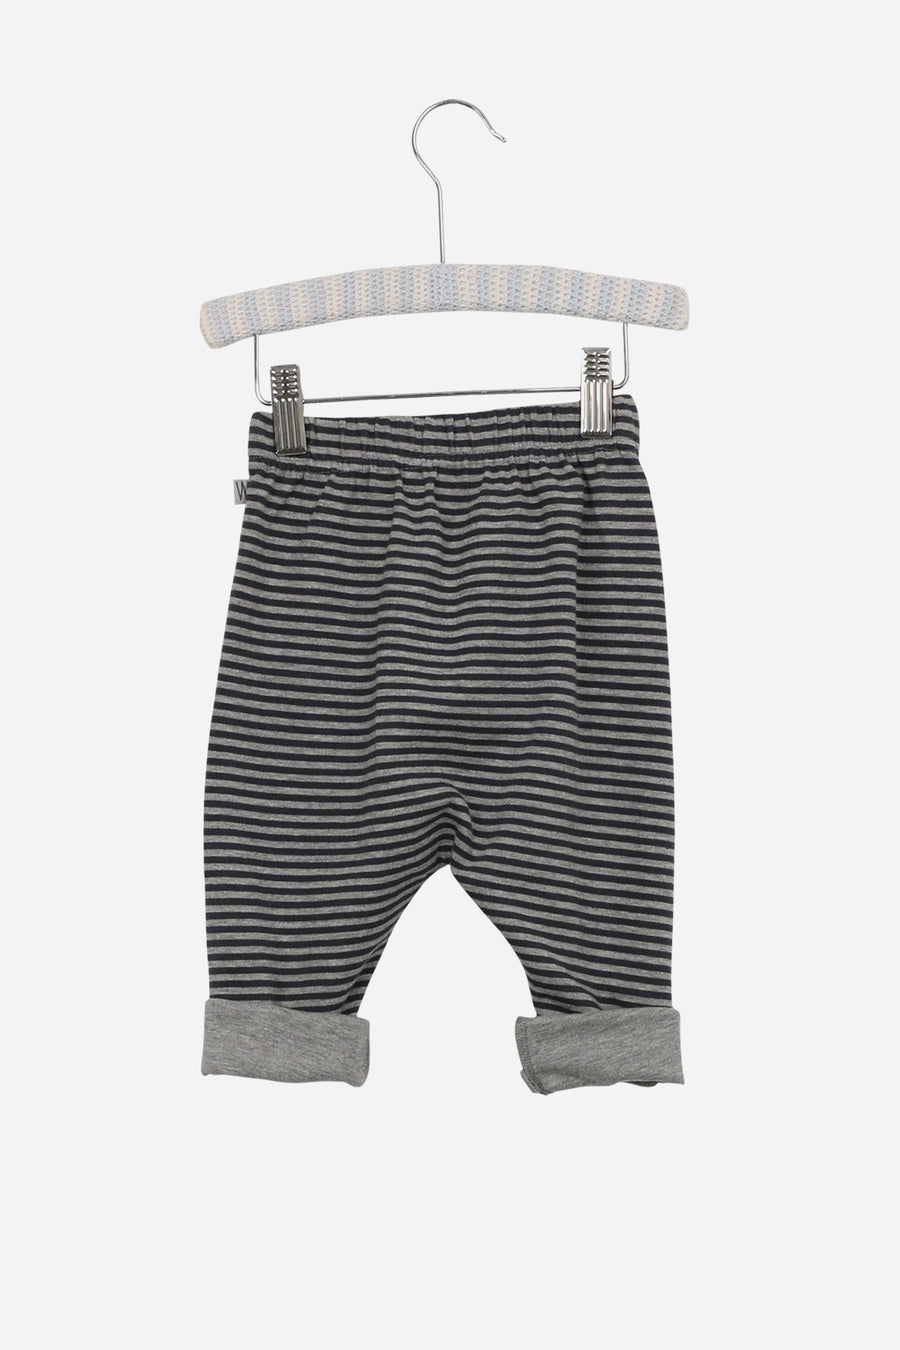 Wheat Buster Baby Pants